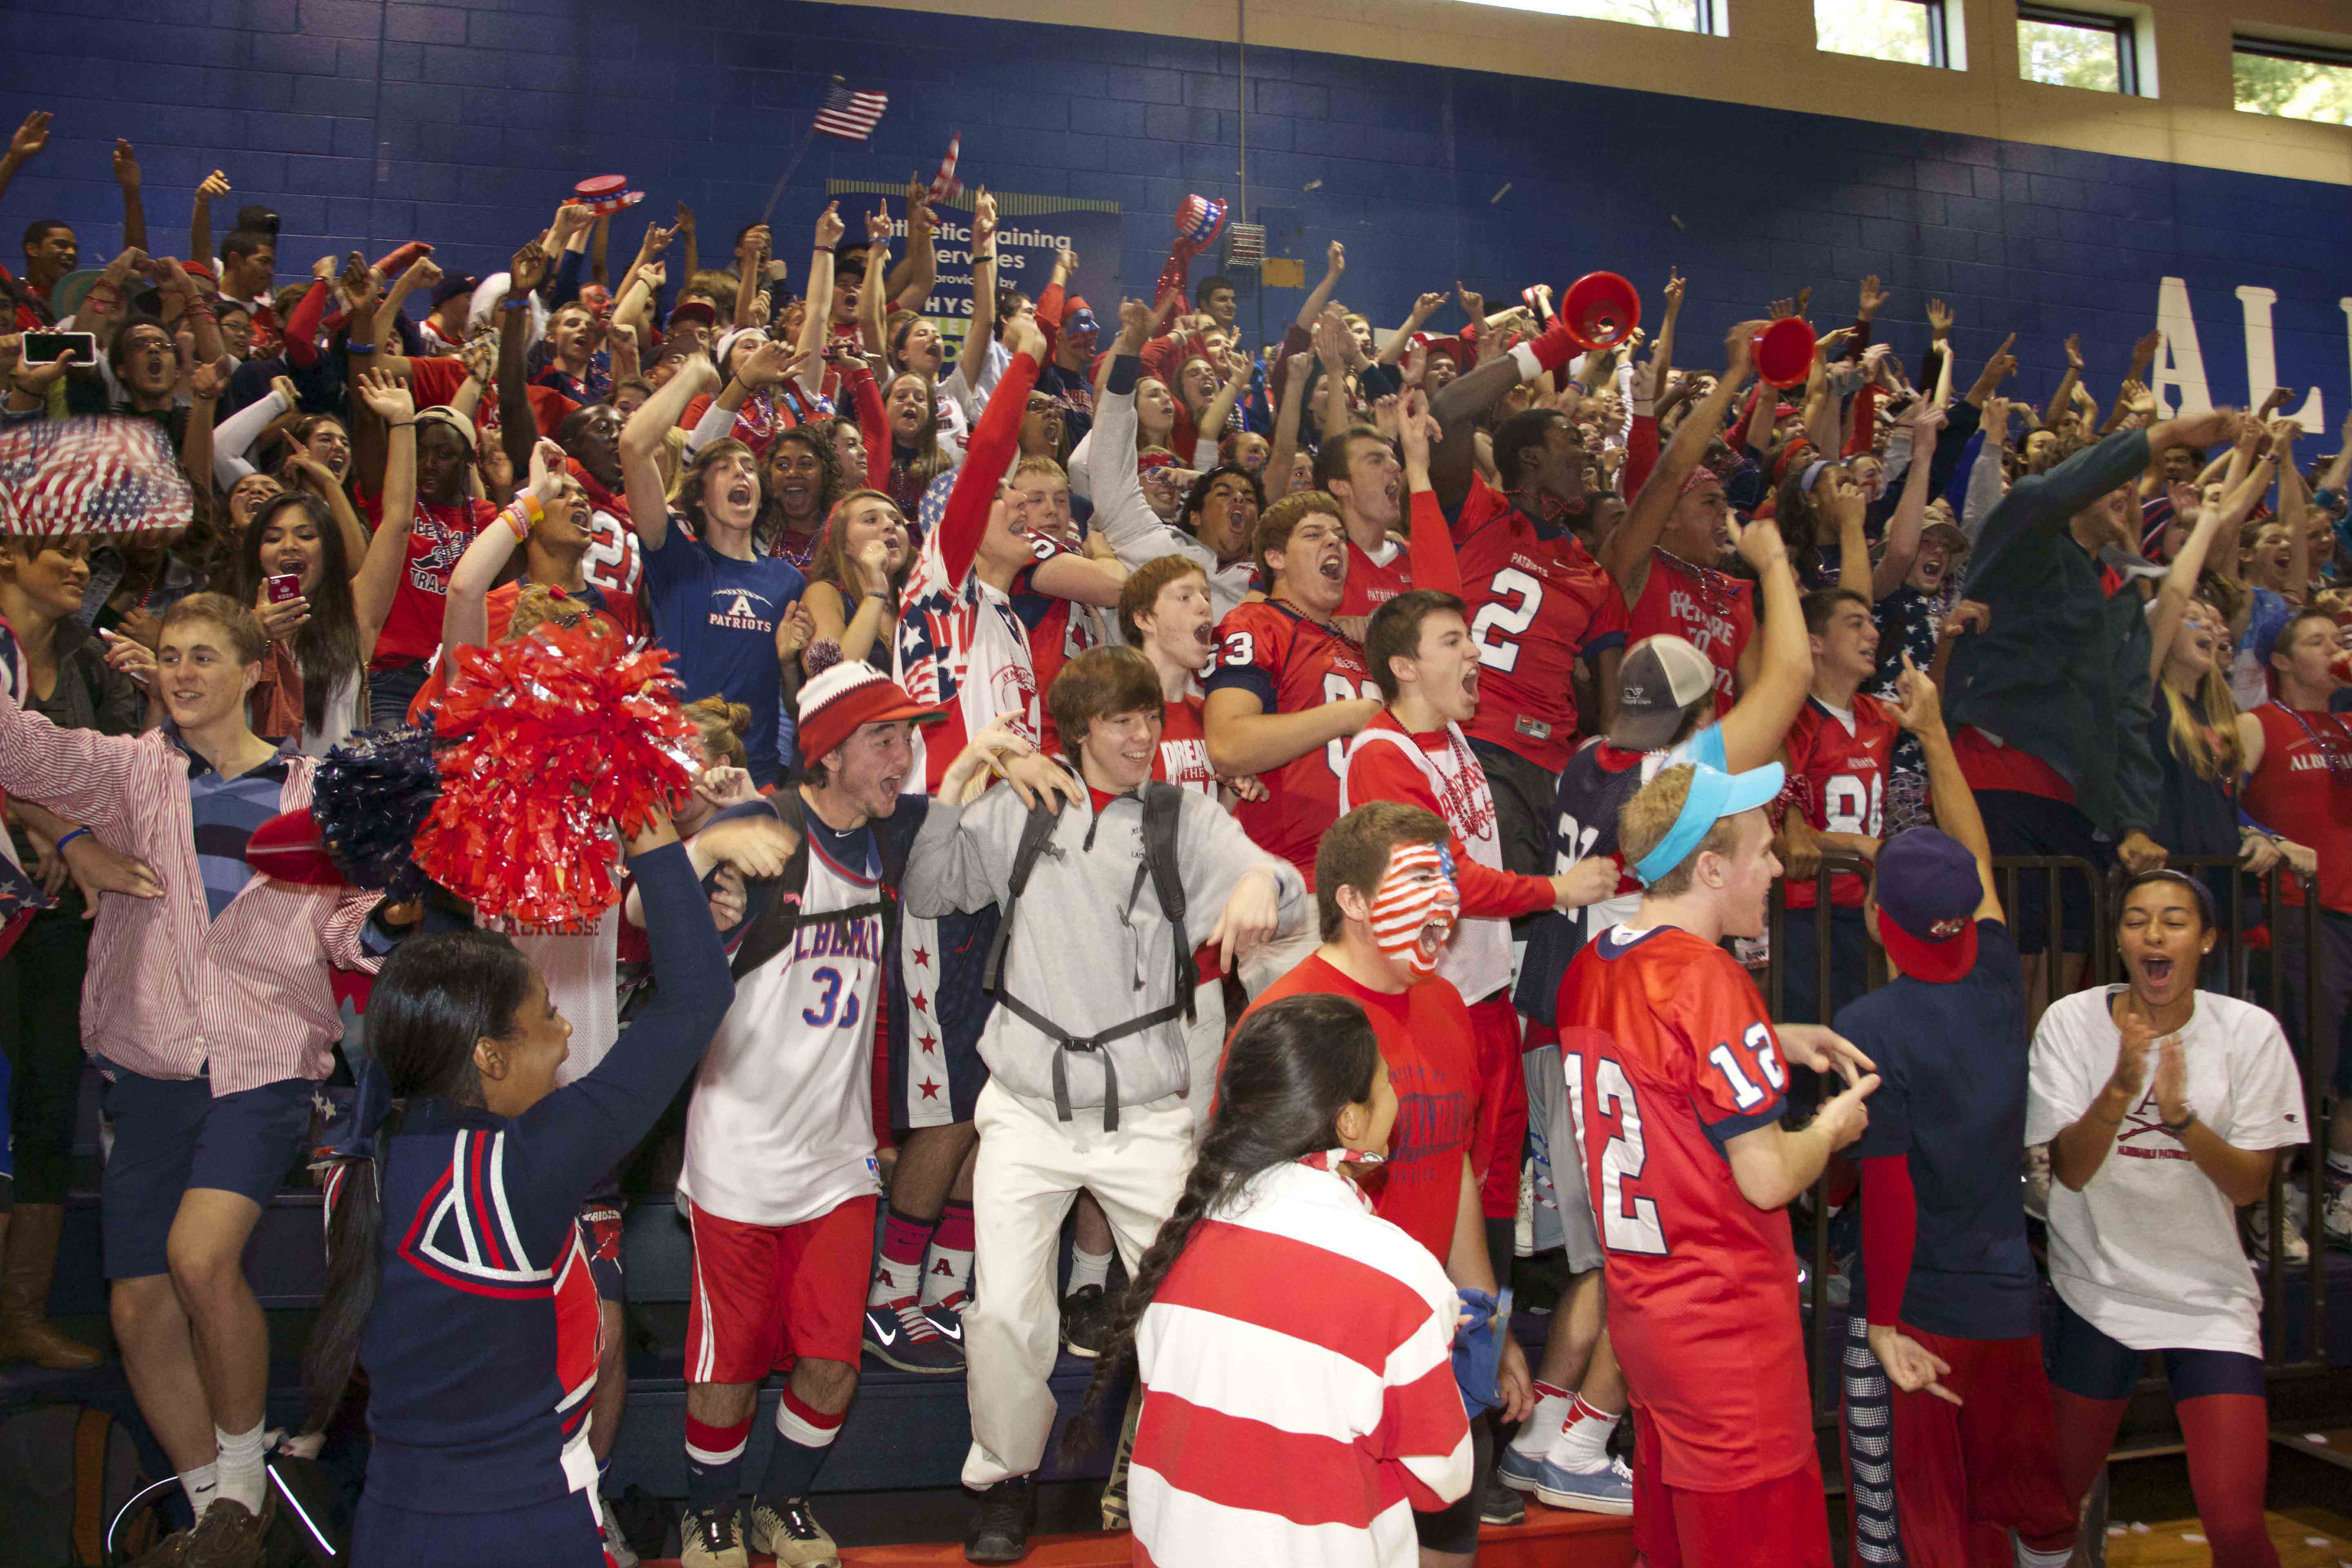 Students cheer at last year's homecoming pep rally decked out in red, white, and blue.